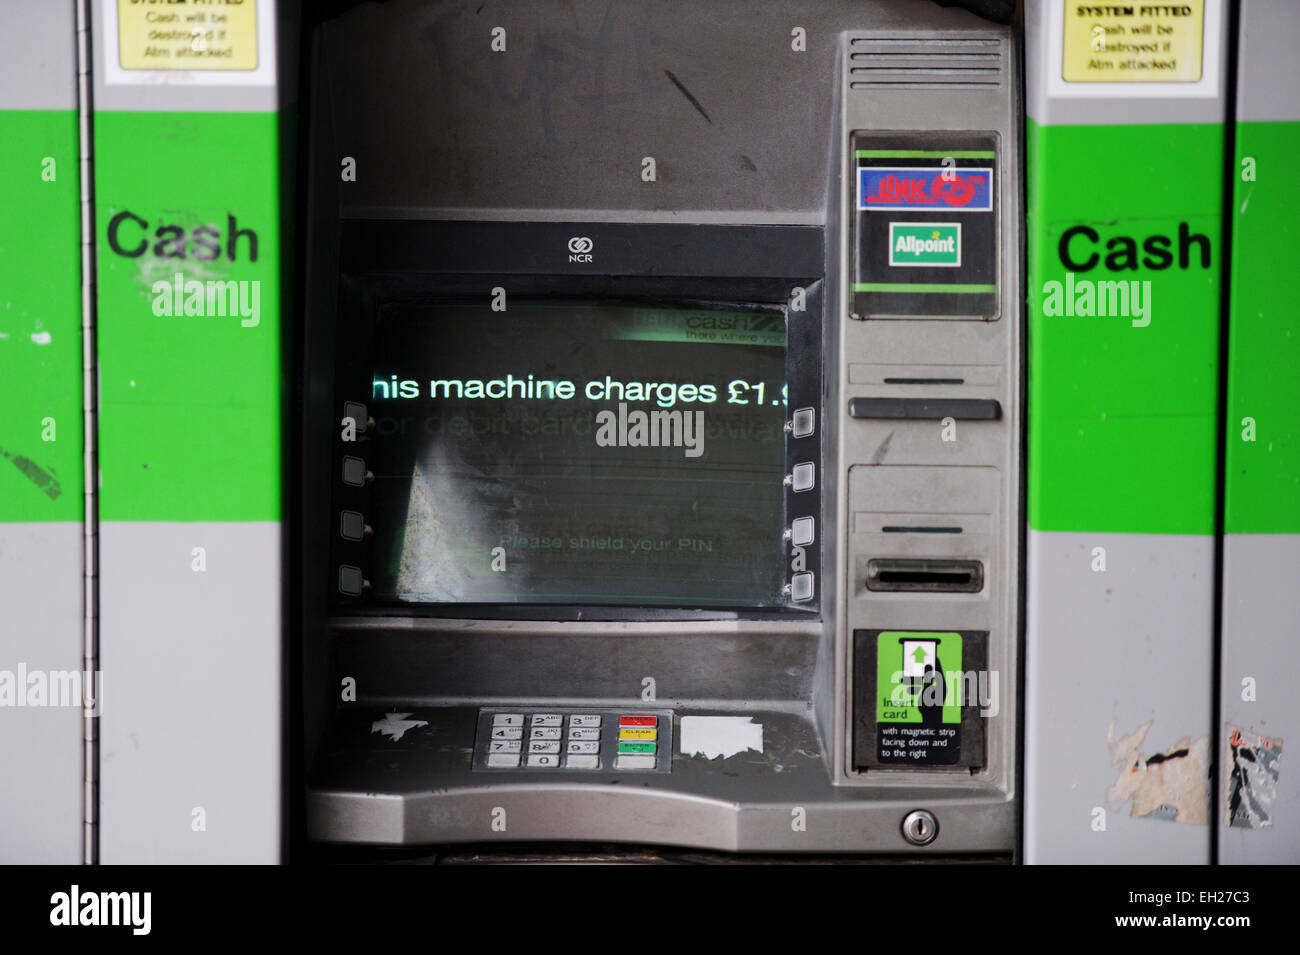 Tatty looking ATM cash machine that charges to make withdrawals Brighton UK - Stock Image